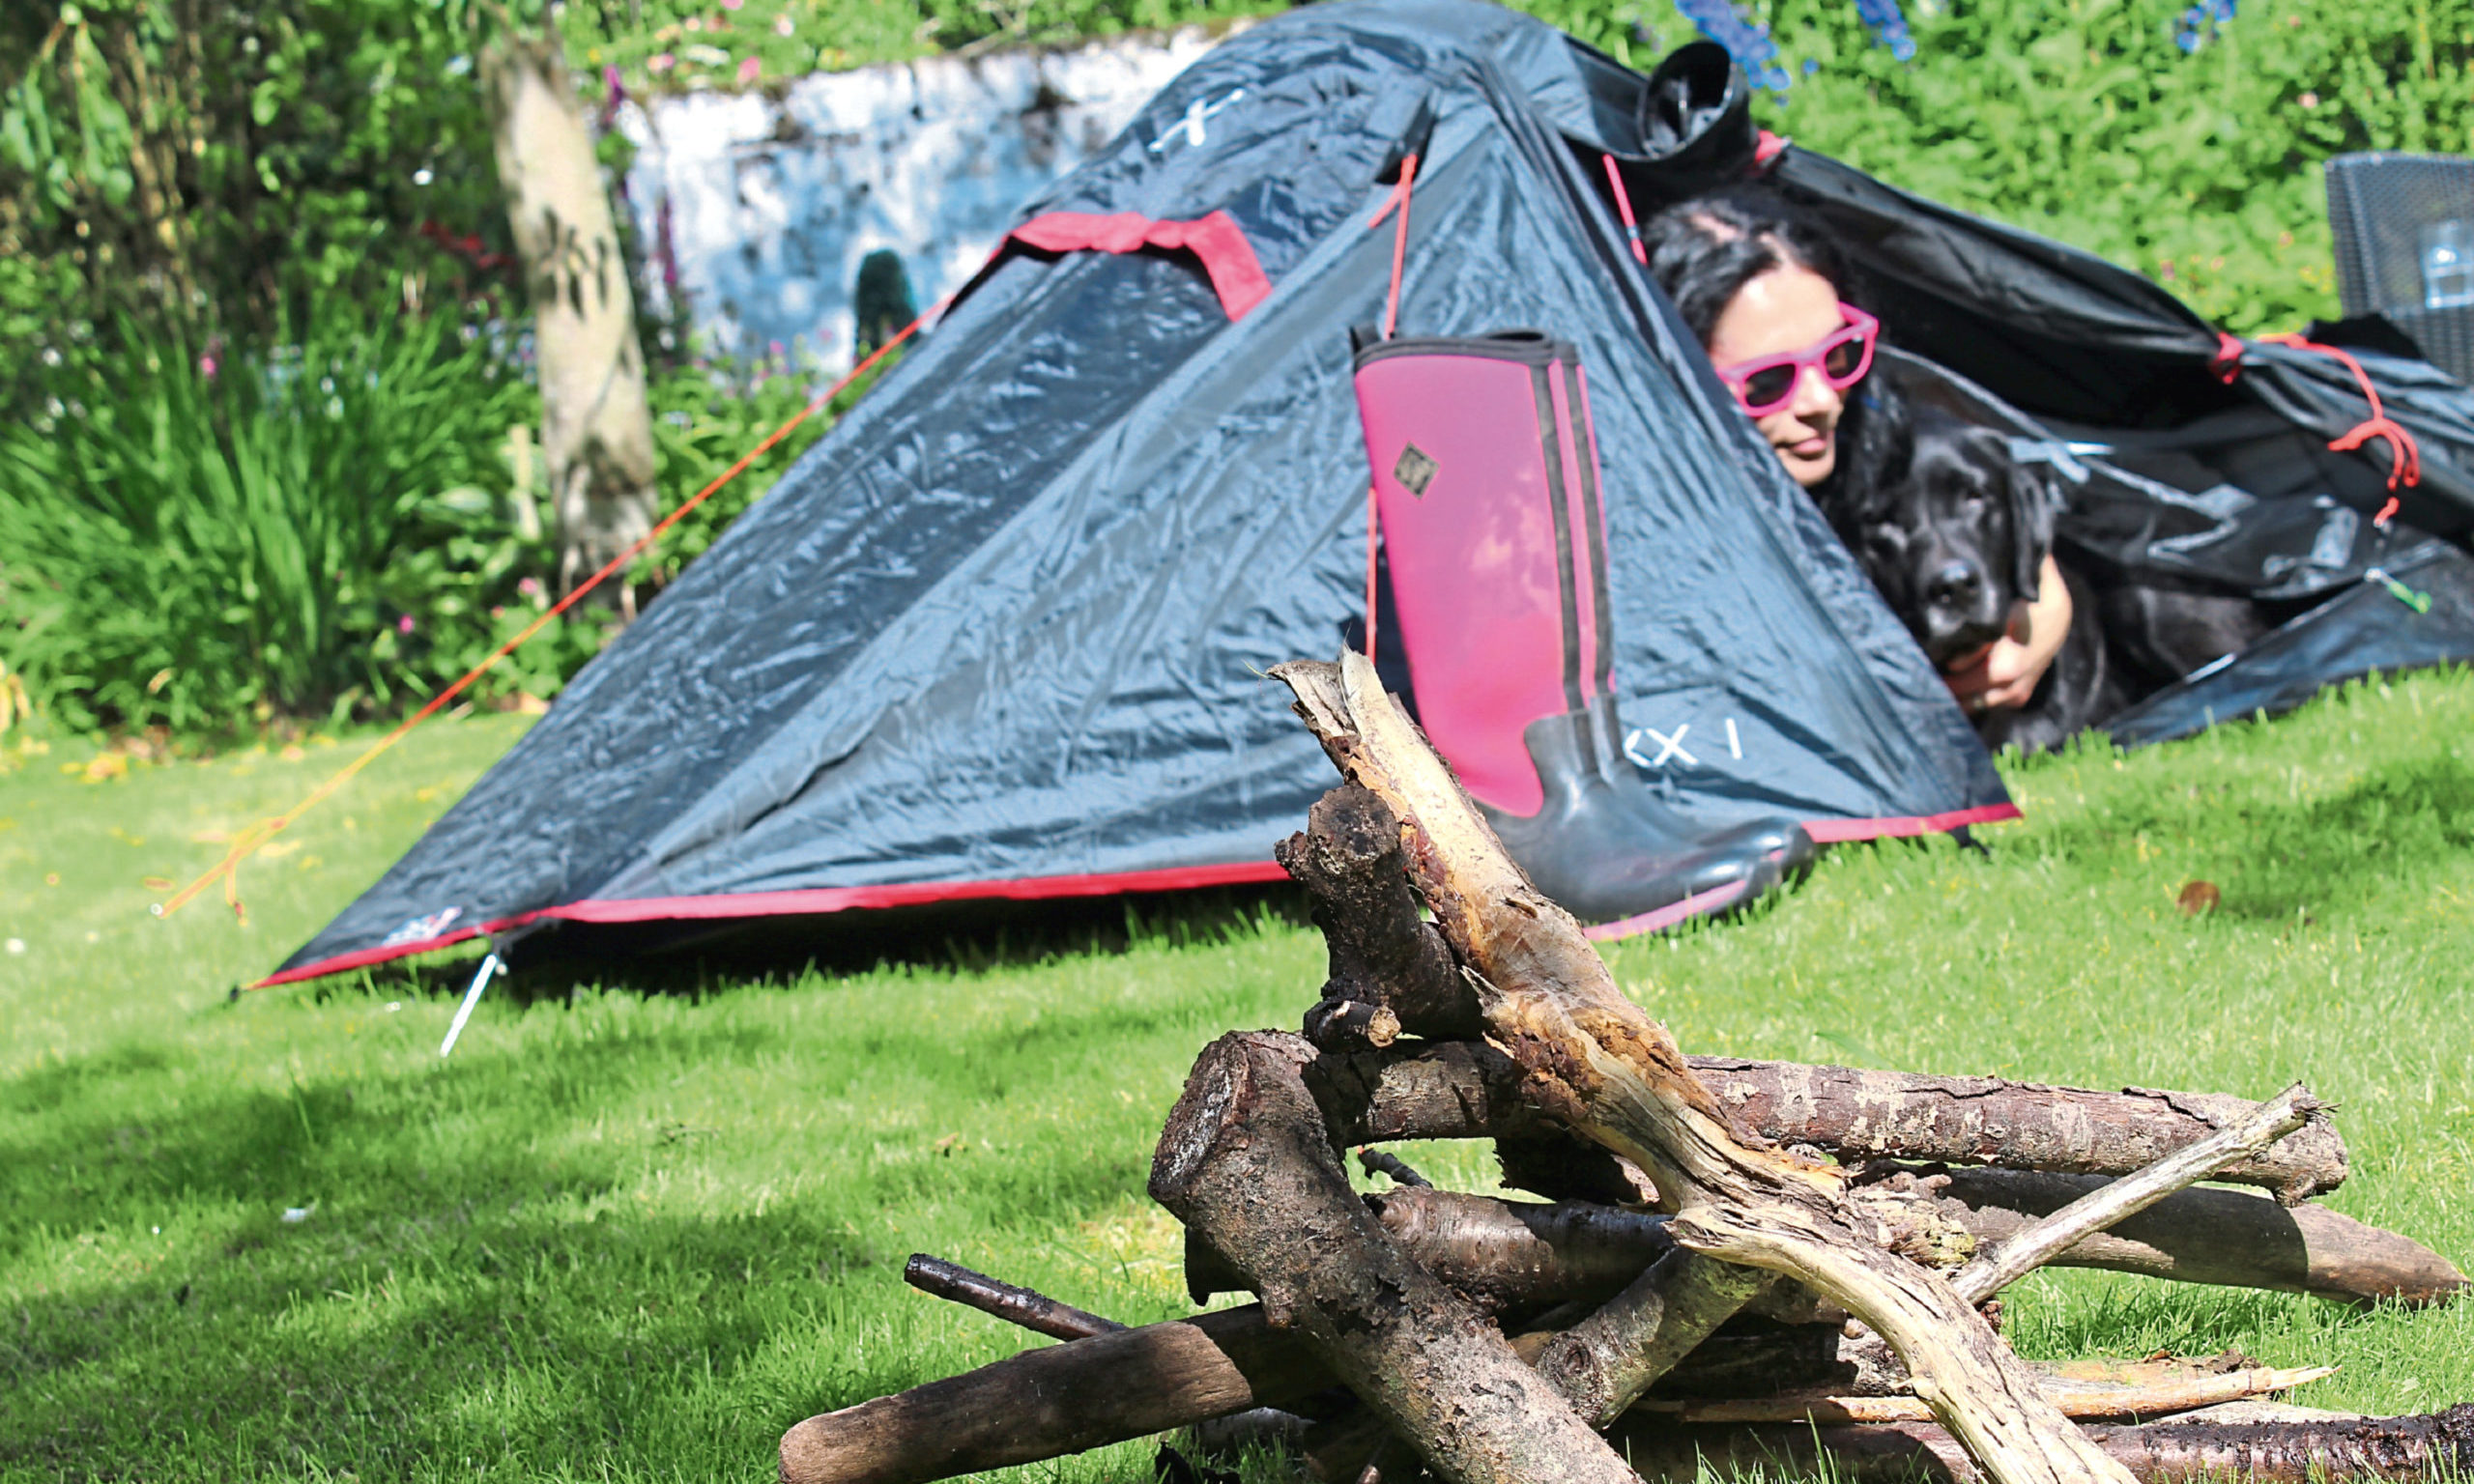 """The Courier's Gayle Ritchie and her dog Toby set up a tent in the garden as part of  a Scouts Scotland """"at home"""" challenge during lockdown"""